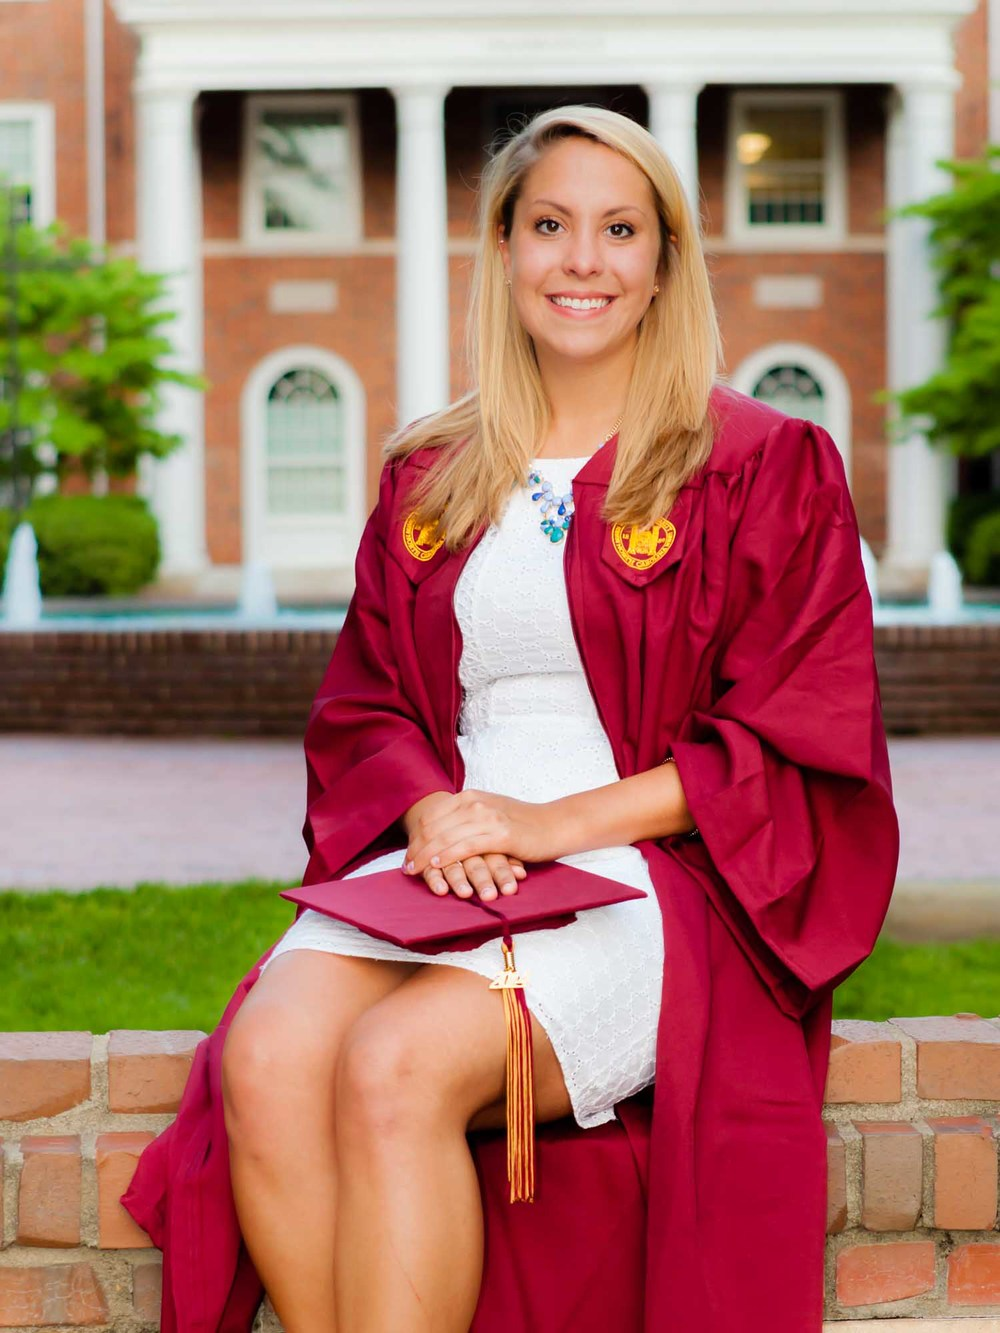 569-Becca & Friends Elon Graduation Portraits_.jpg